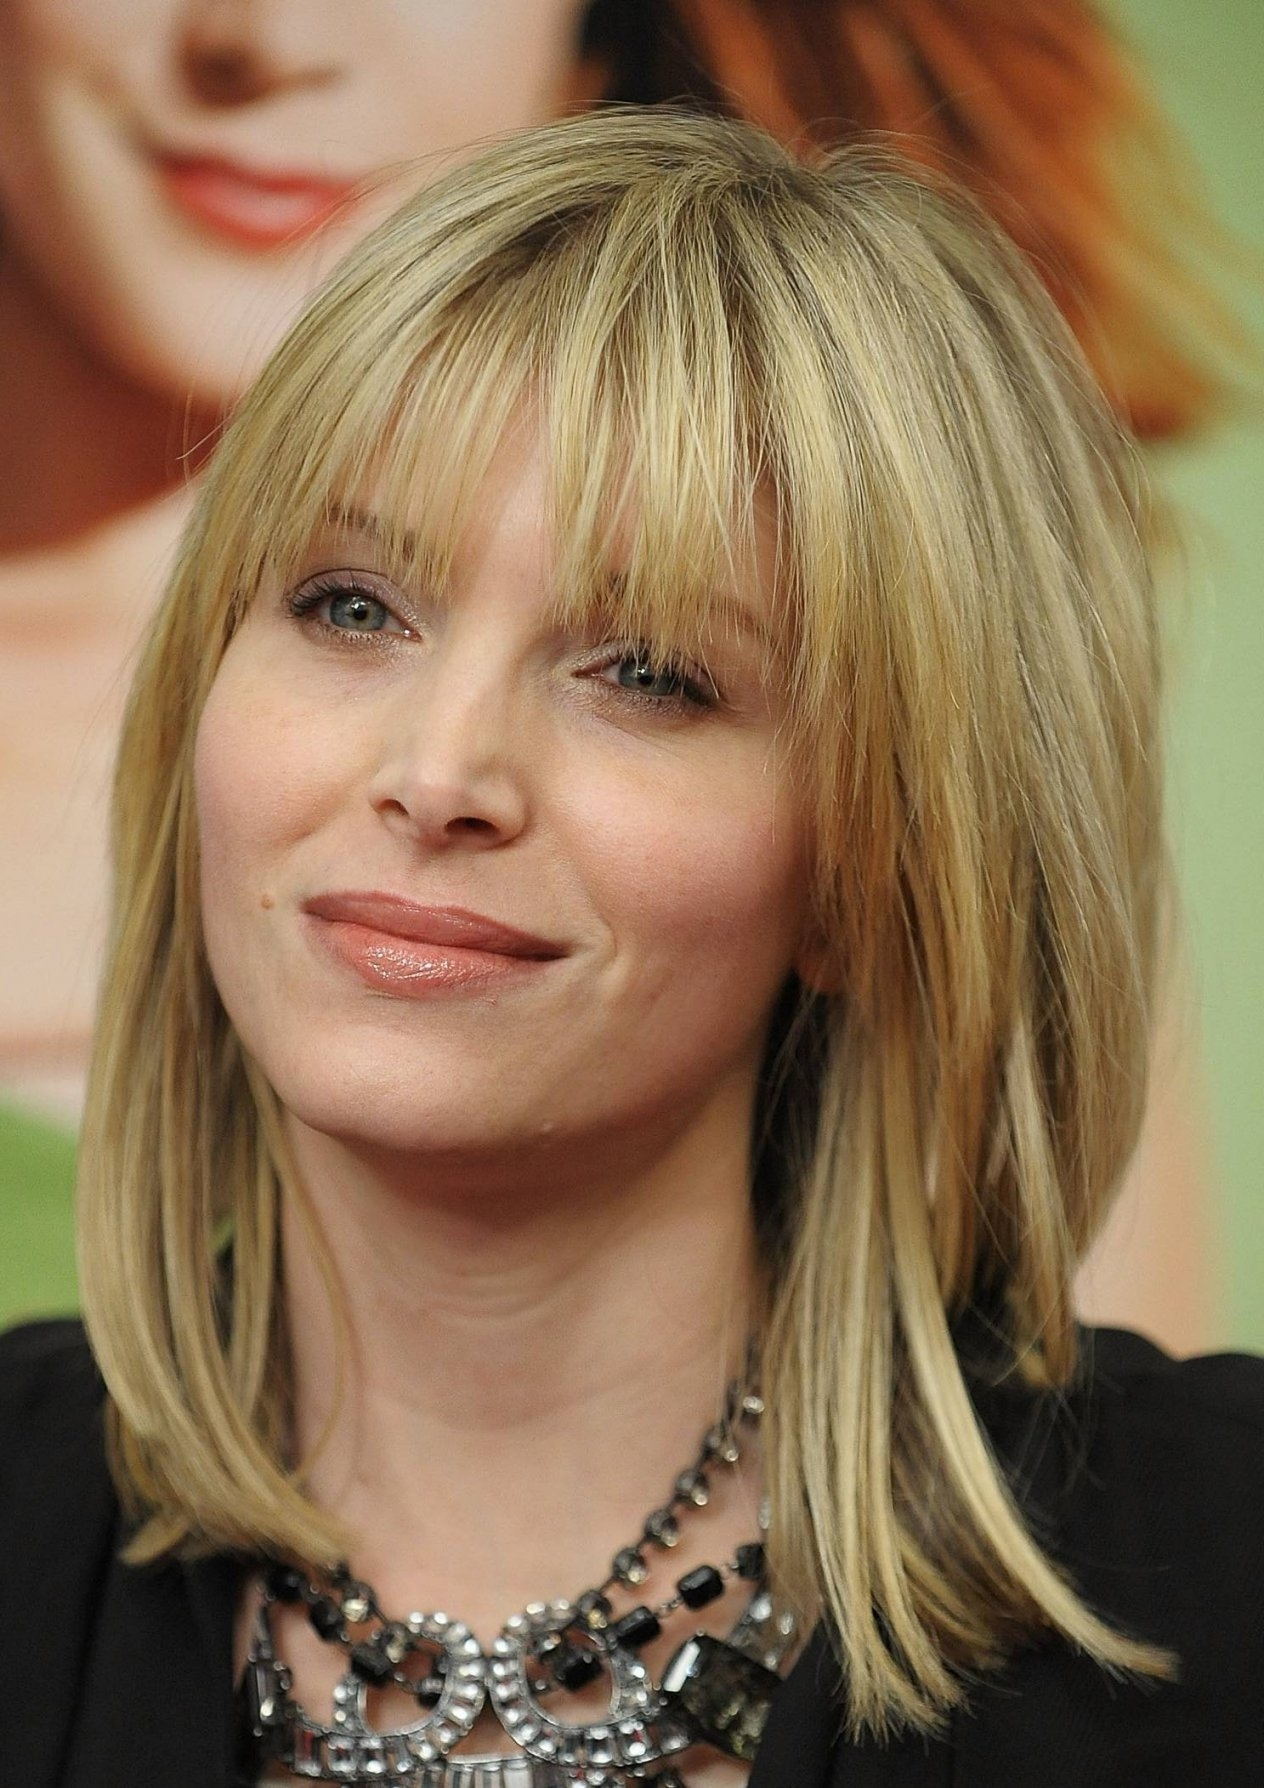 Trendy Shaggy Hairstyles For Round Faces Pertaining To Medium Long Hair With Layers For Round Face – Best Haircut Style (View 15 of 15)